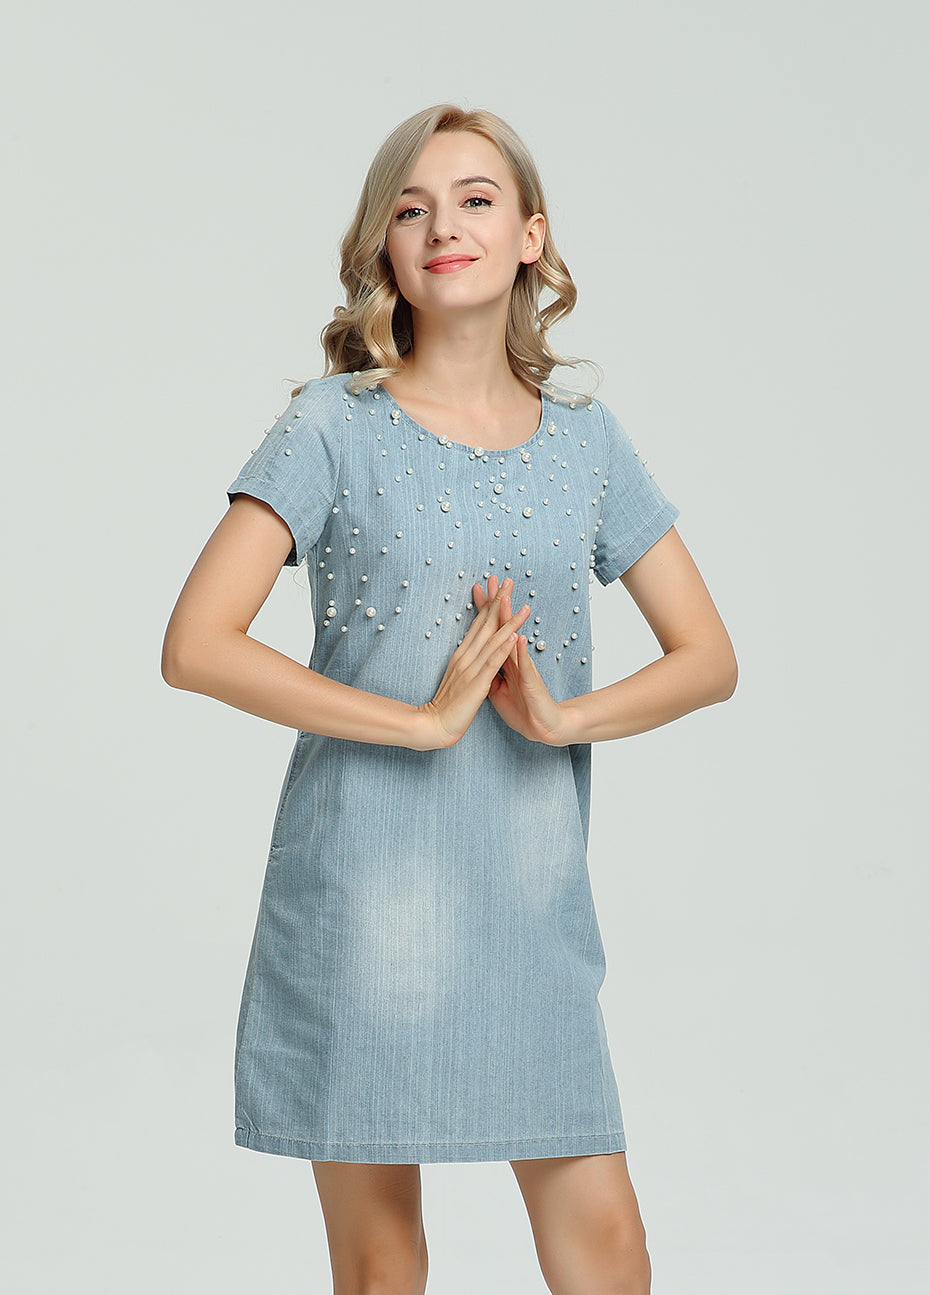 Beaded Jean Dress - Utterly Unique Boutique - S-5XL - FREE SHIP - NEW - This comfortable beaded jean dress is casual and unique with beads on the top half. It features a scoop neckline, ripped and faded design, zipper closure, short sleeves and falls above the knee. Pair with flats, sandals or heels. From our Utterly Unique boutique. Description: Neckline: Scoop, Fashion Element: Beads, Faded, Ripped, Material: